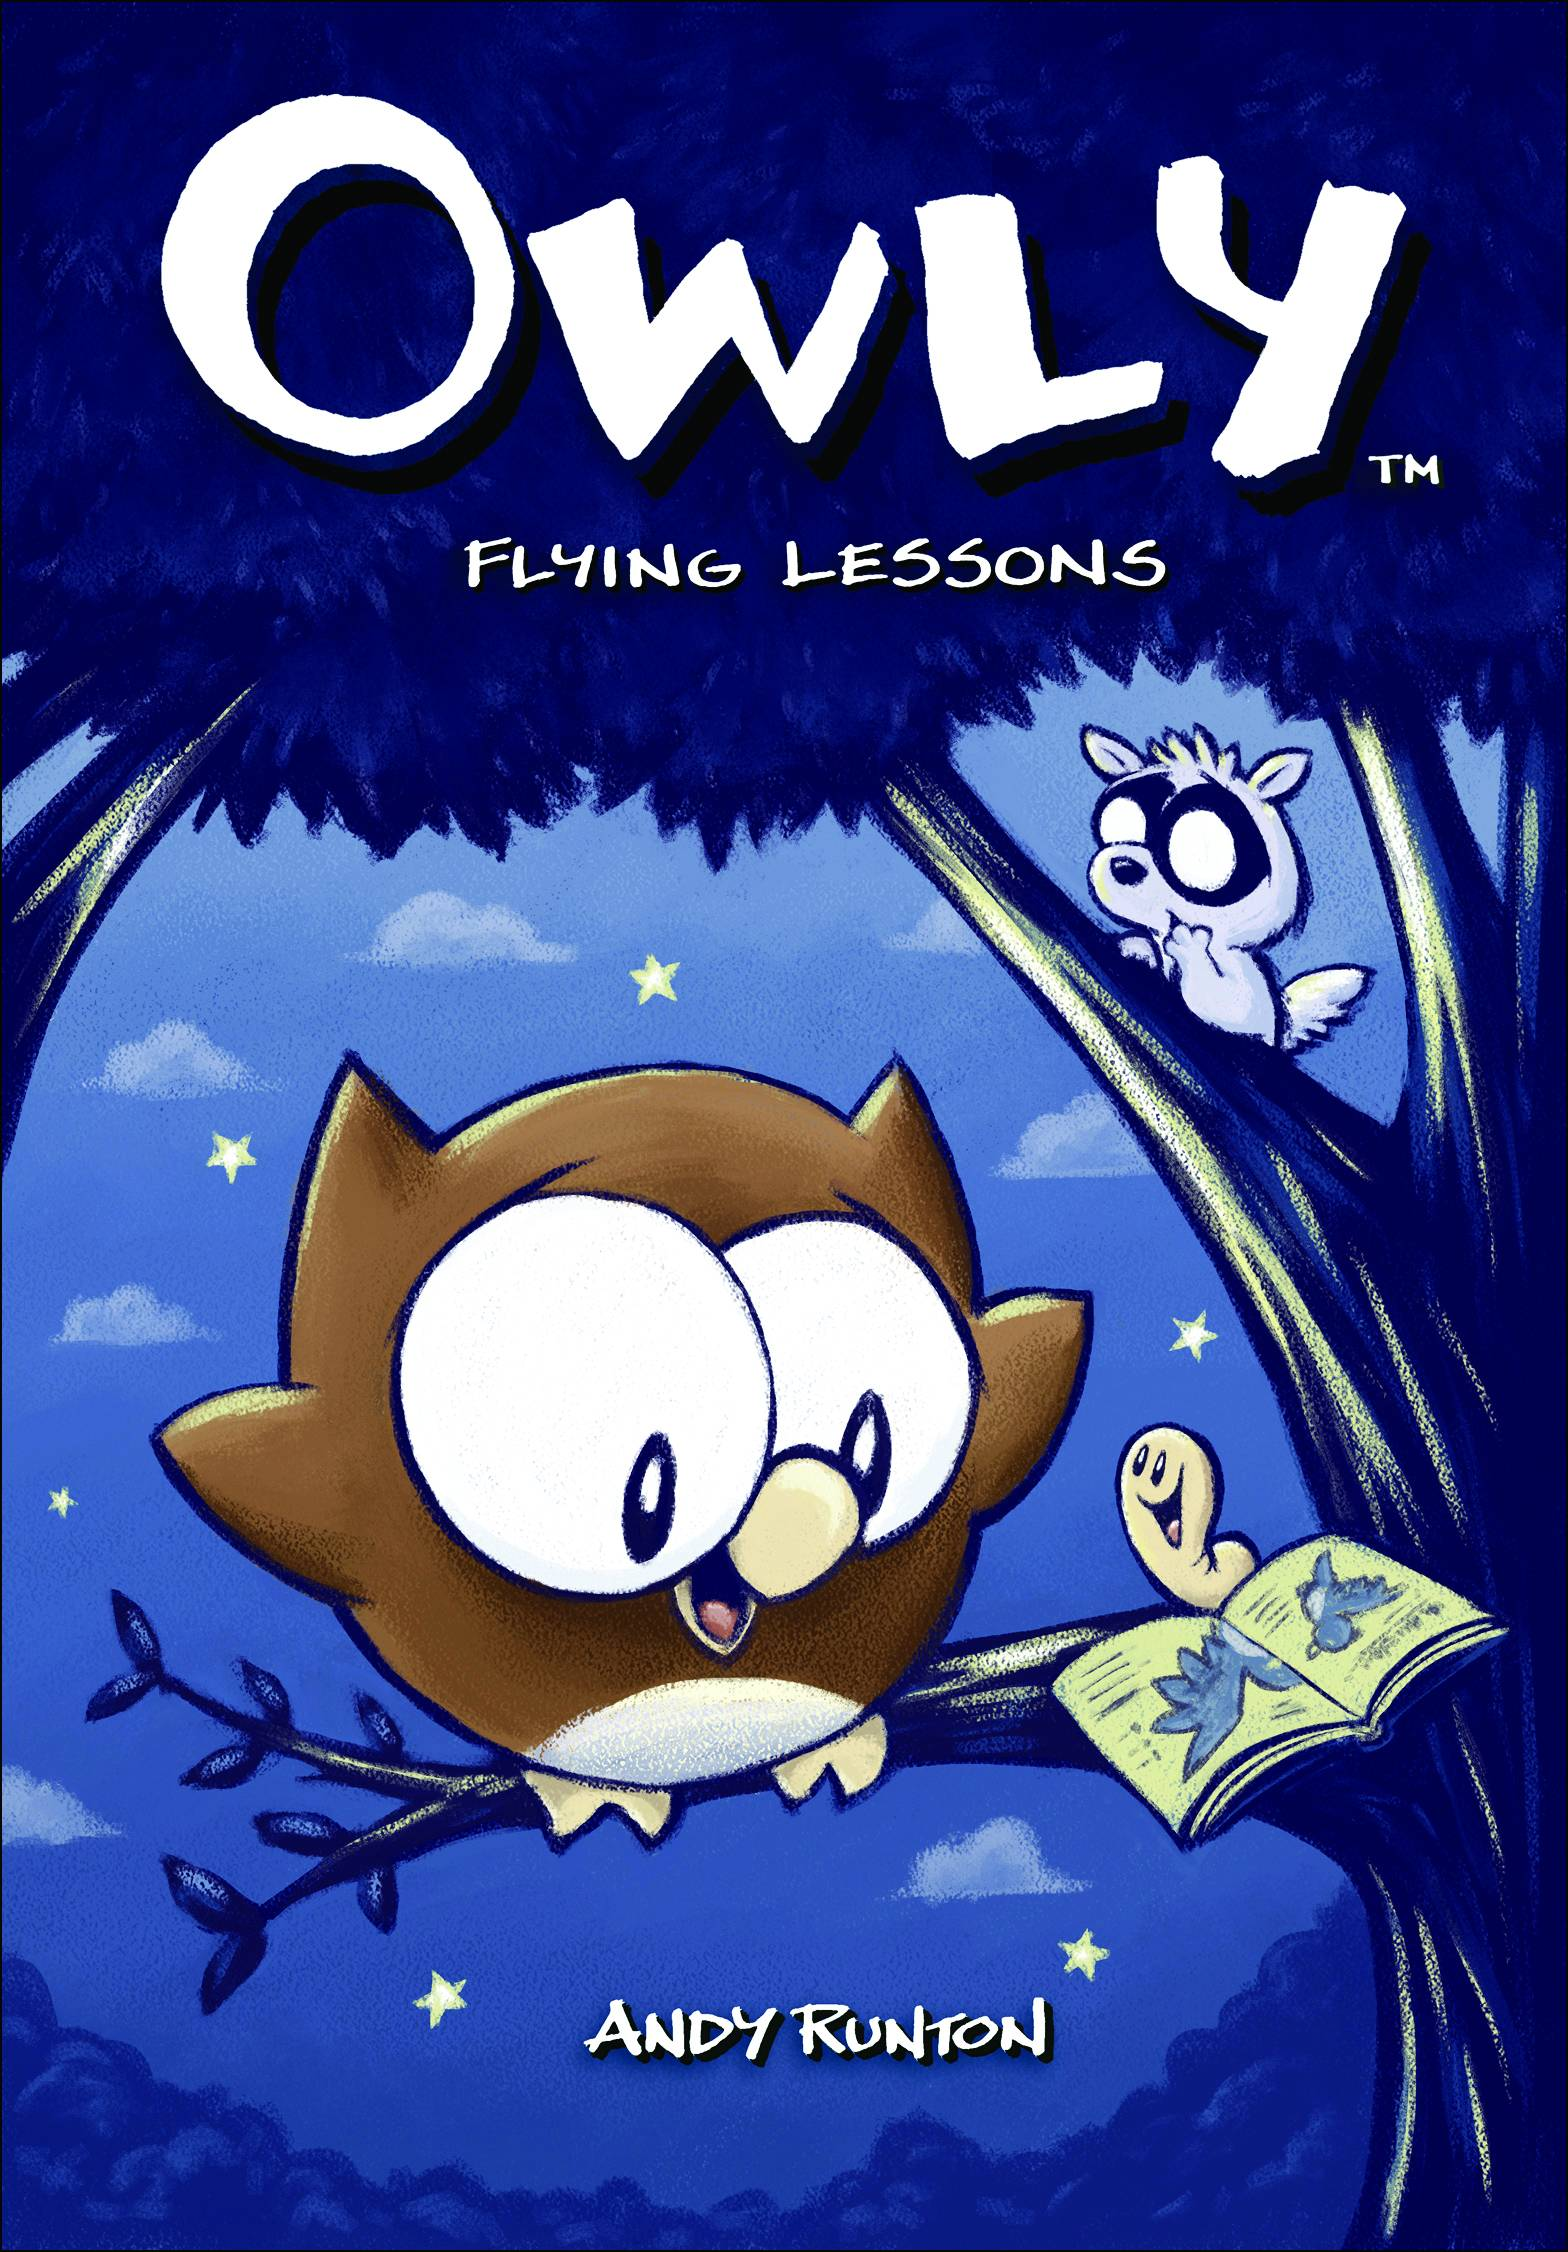 Owly Vol 3: Flying Lessons TPB